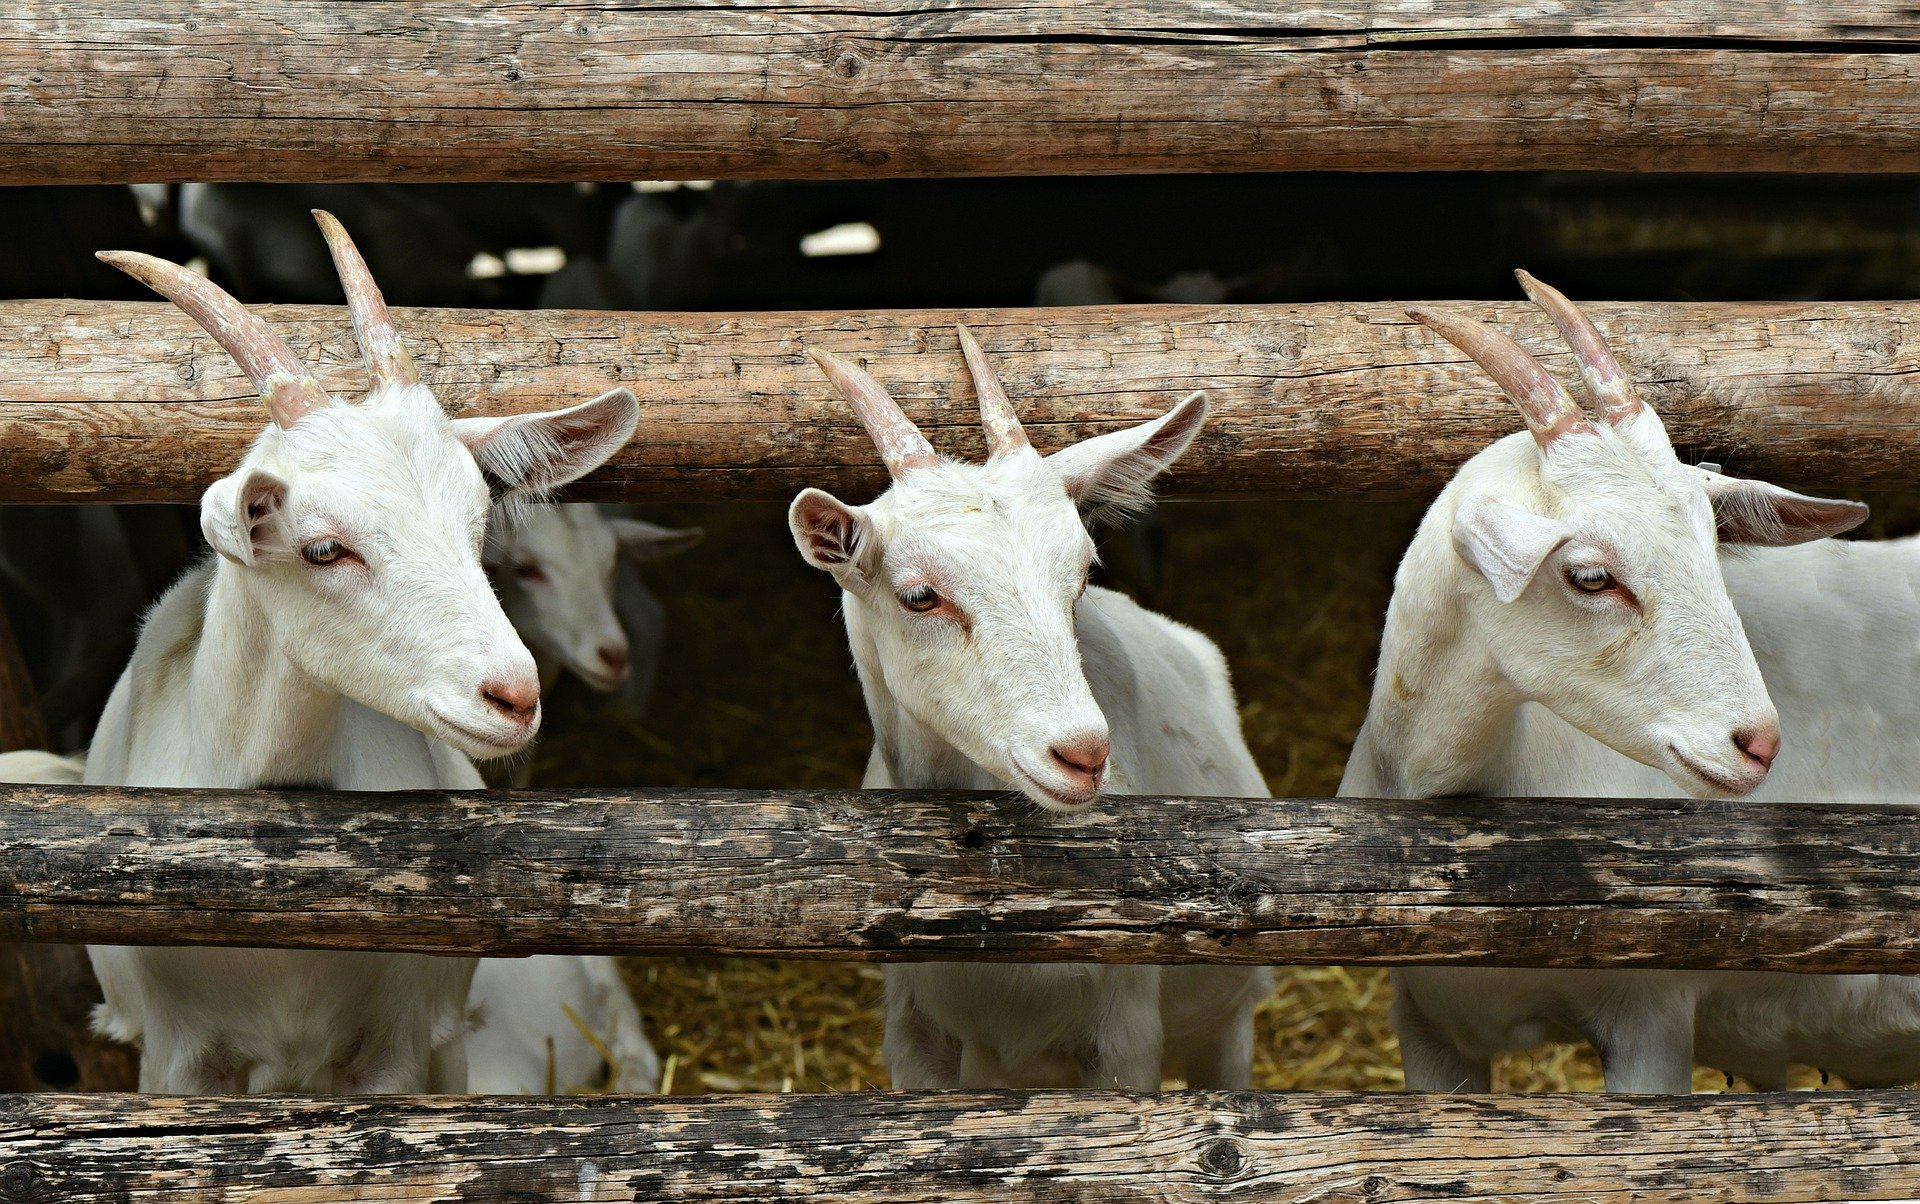 Three White Goats Looking Through a Fence - Farm Background Wallpaper Pictures